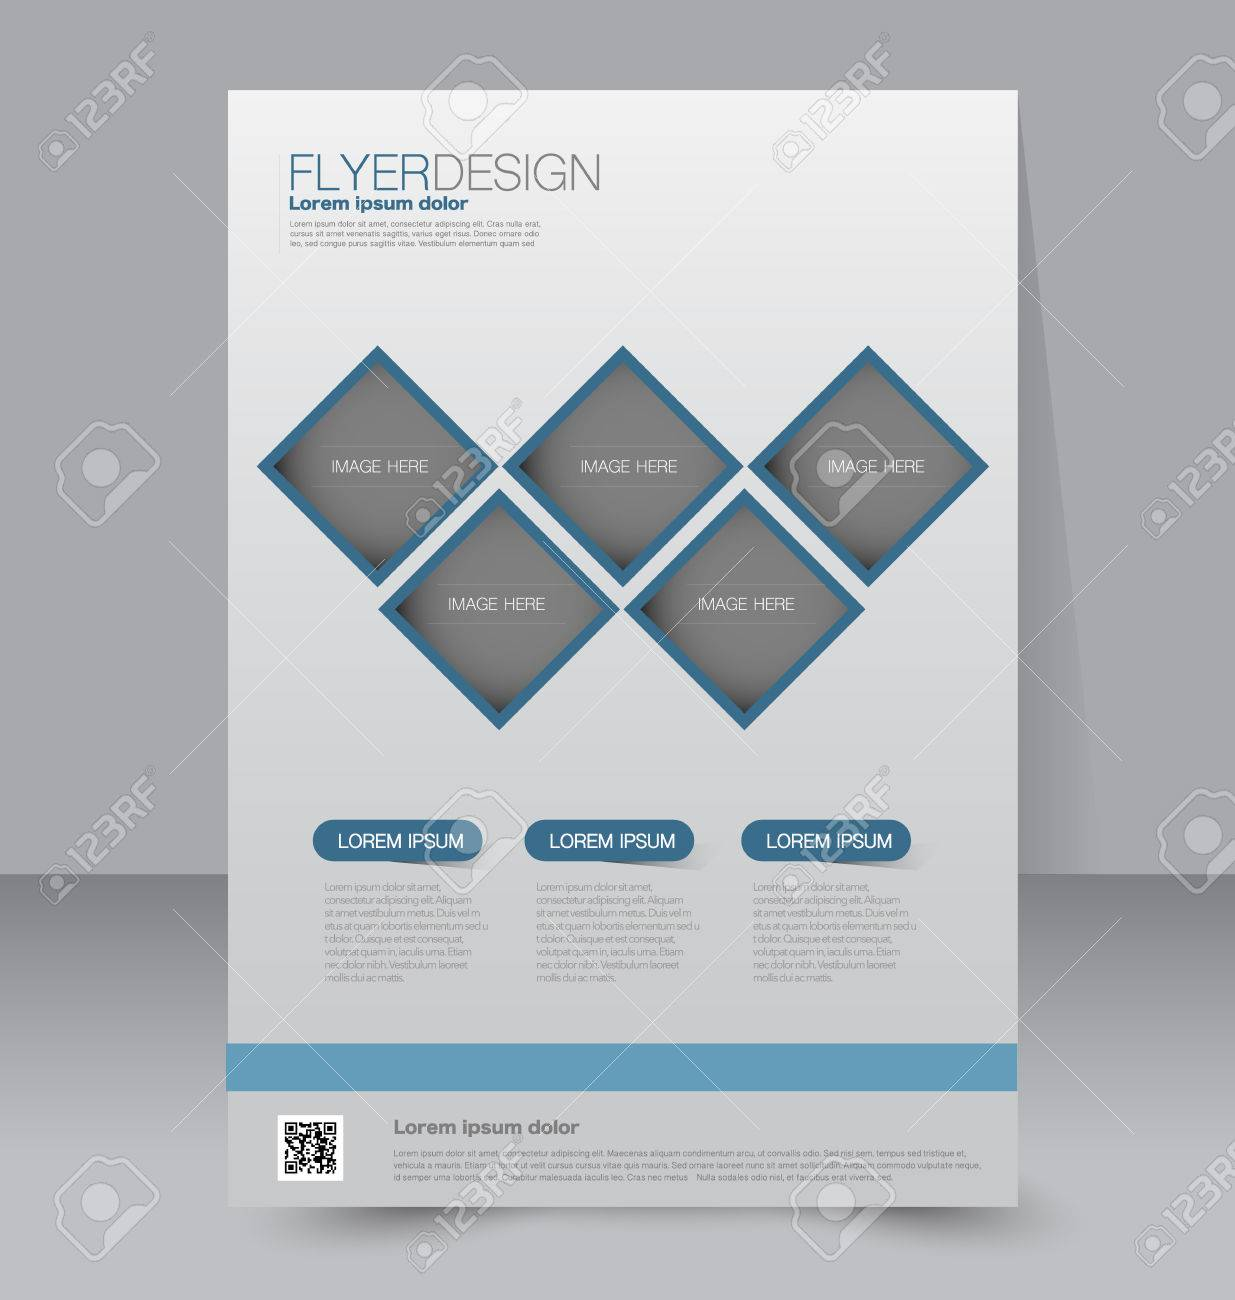 Flyer Template Business Brochure Editable A4 Poster For Design Education Presentation